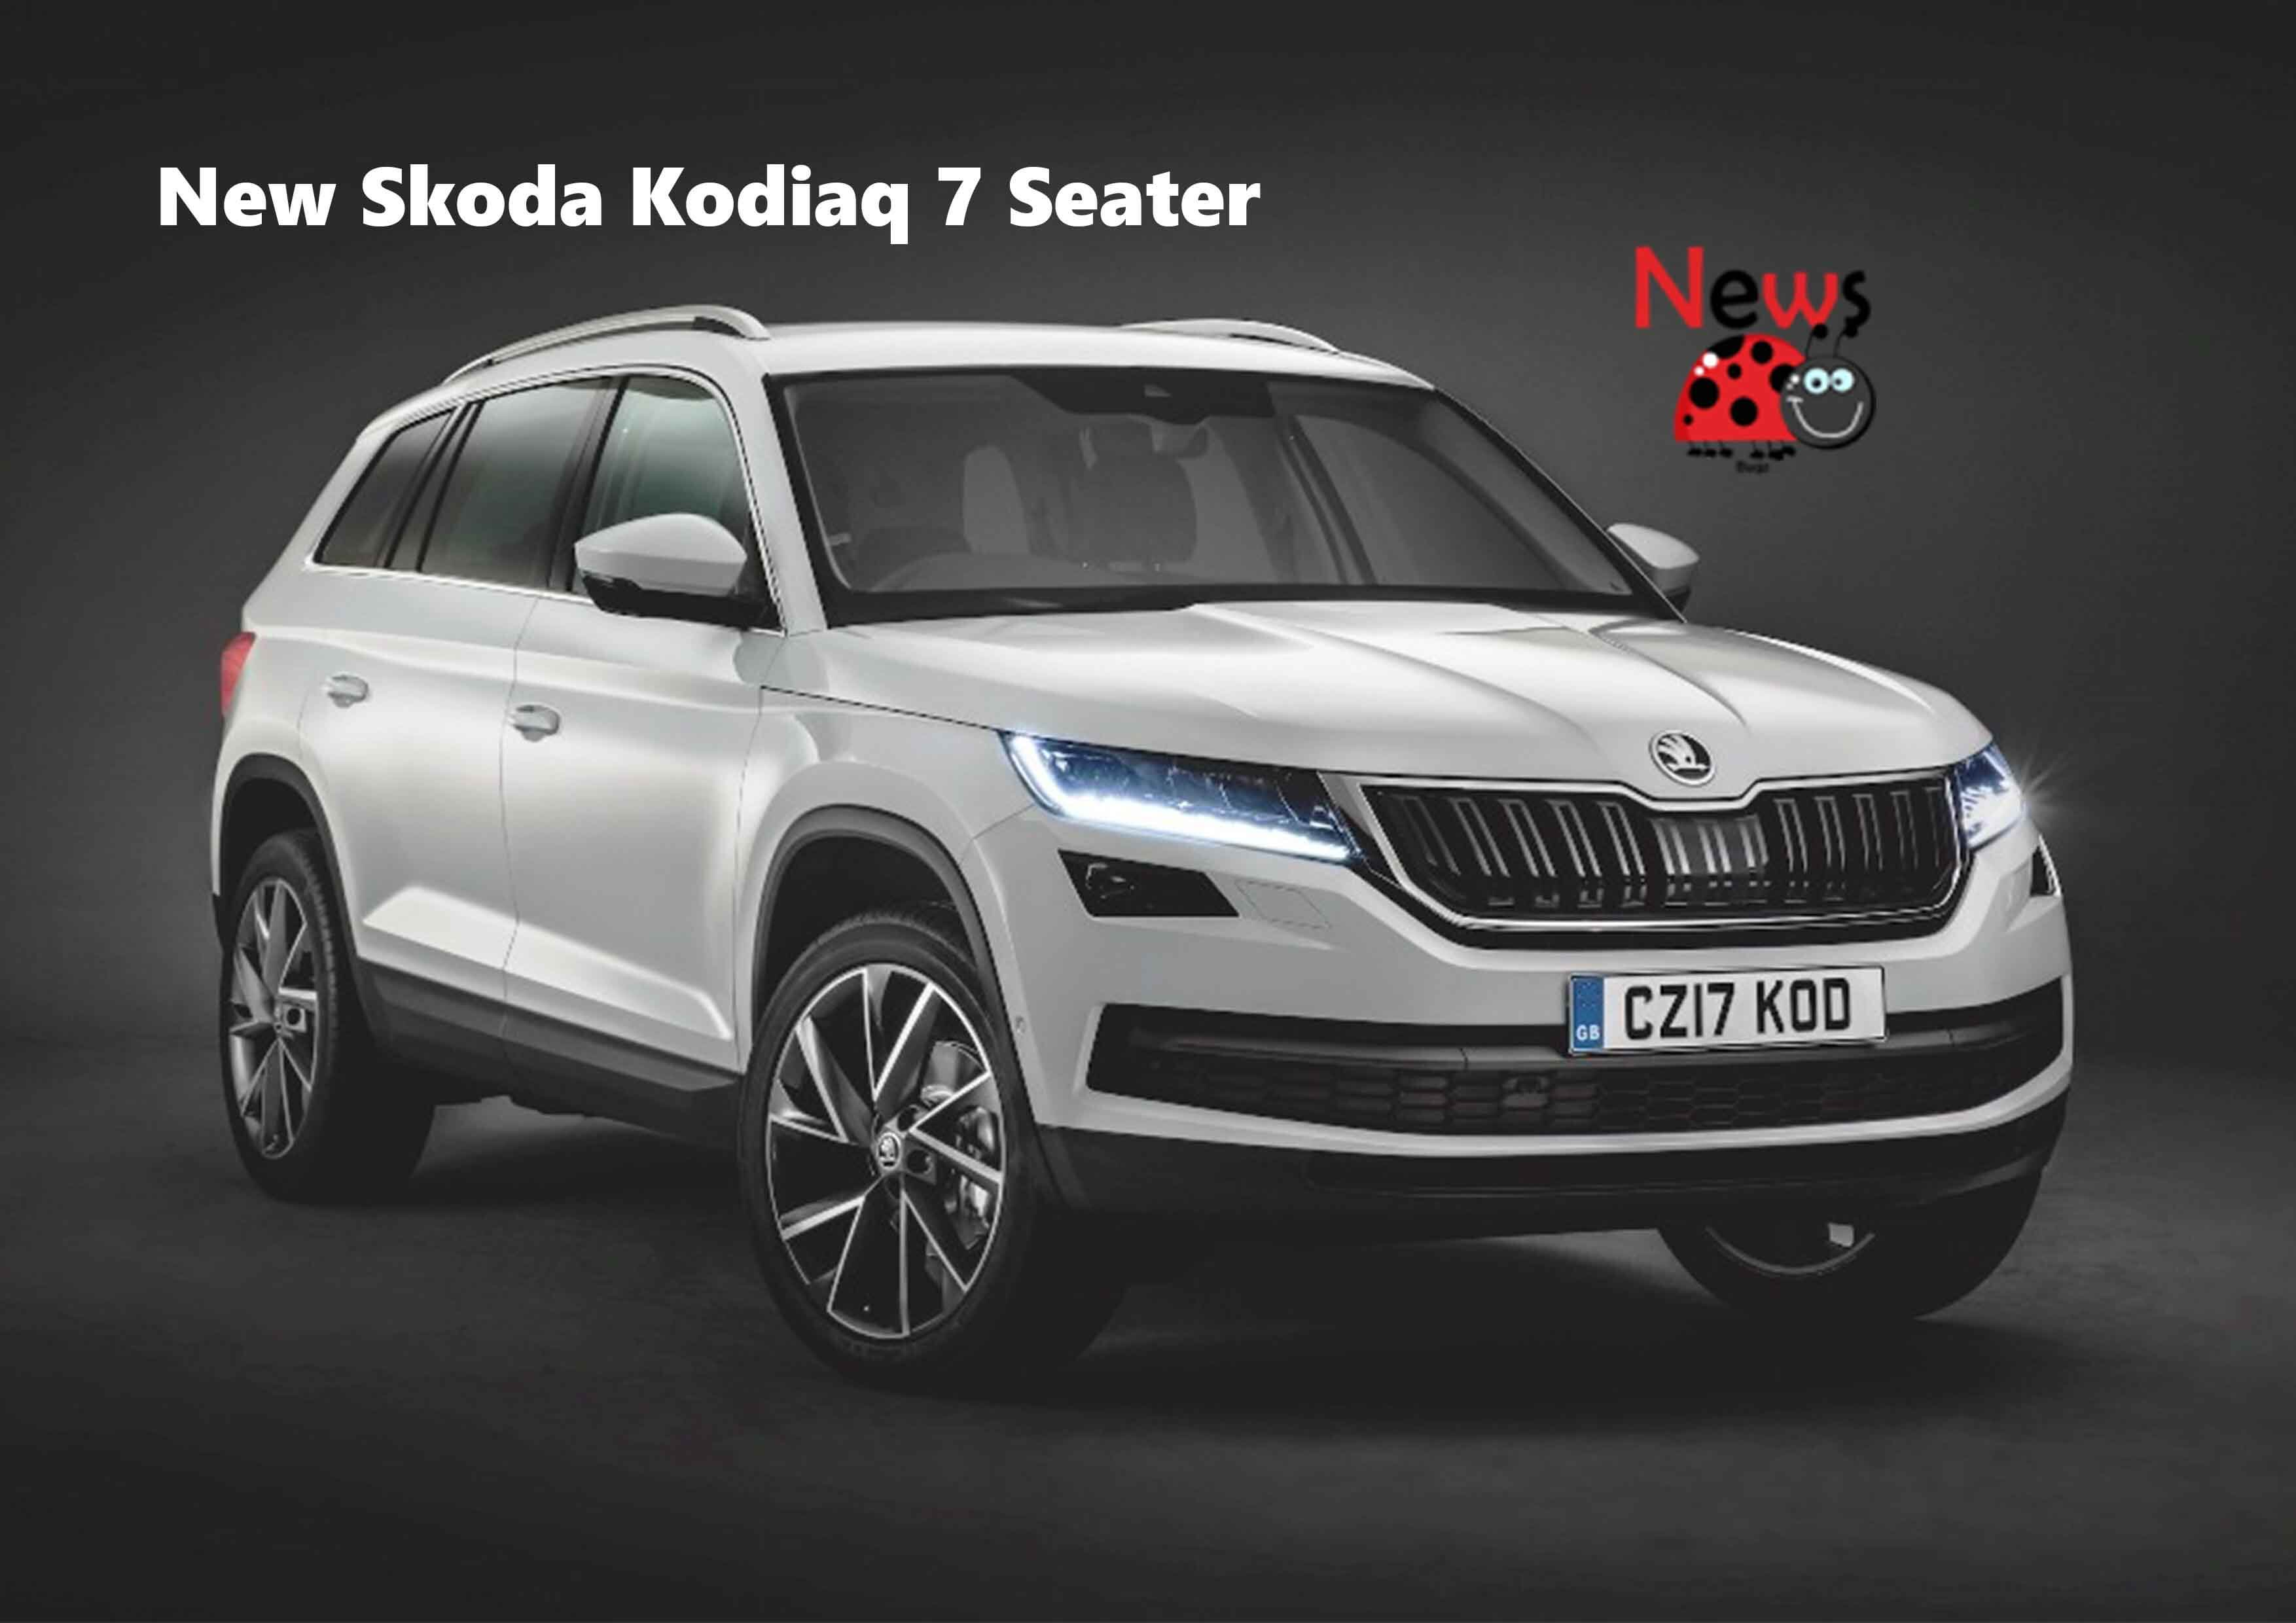 7 Seater New Skoda Kodiaq 7 Seater Launched In India News Bugz